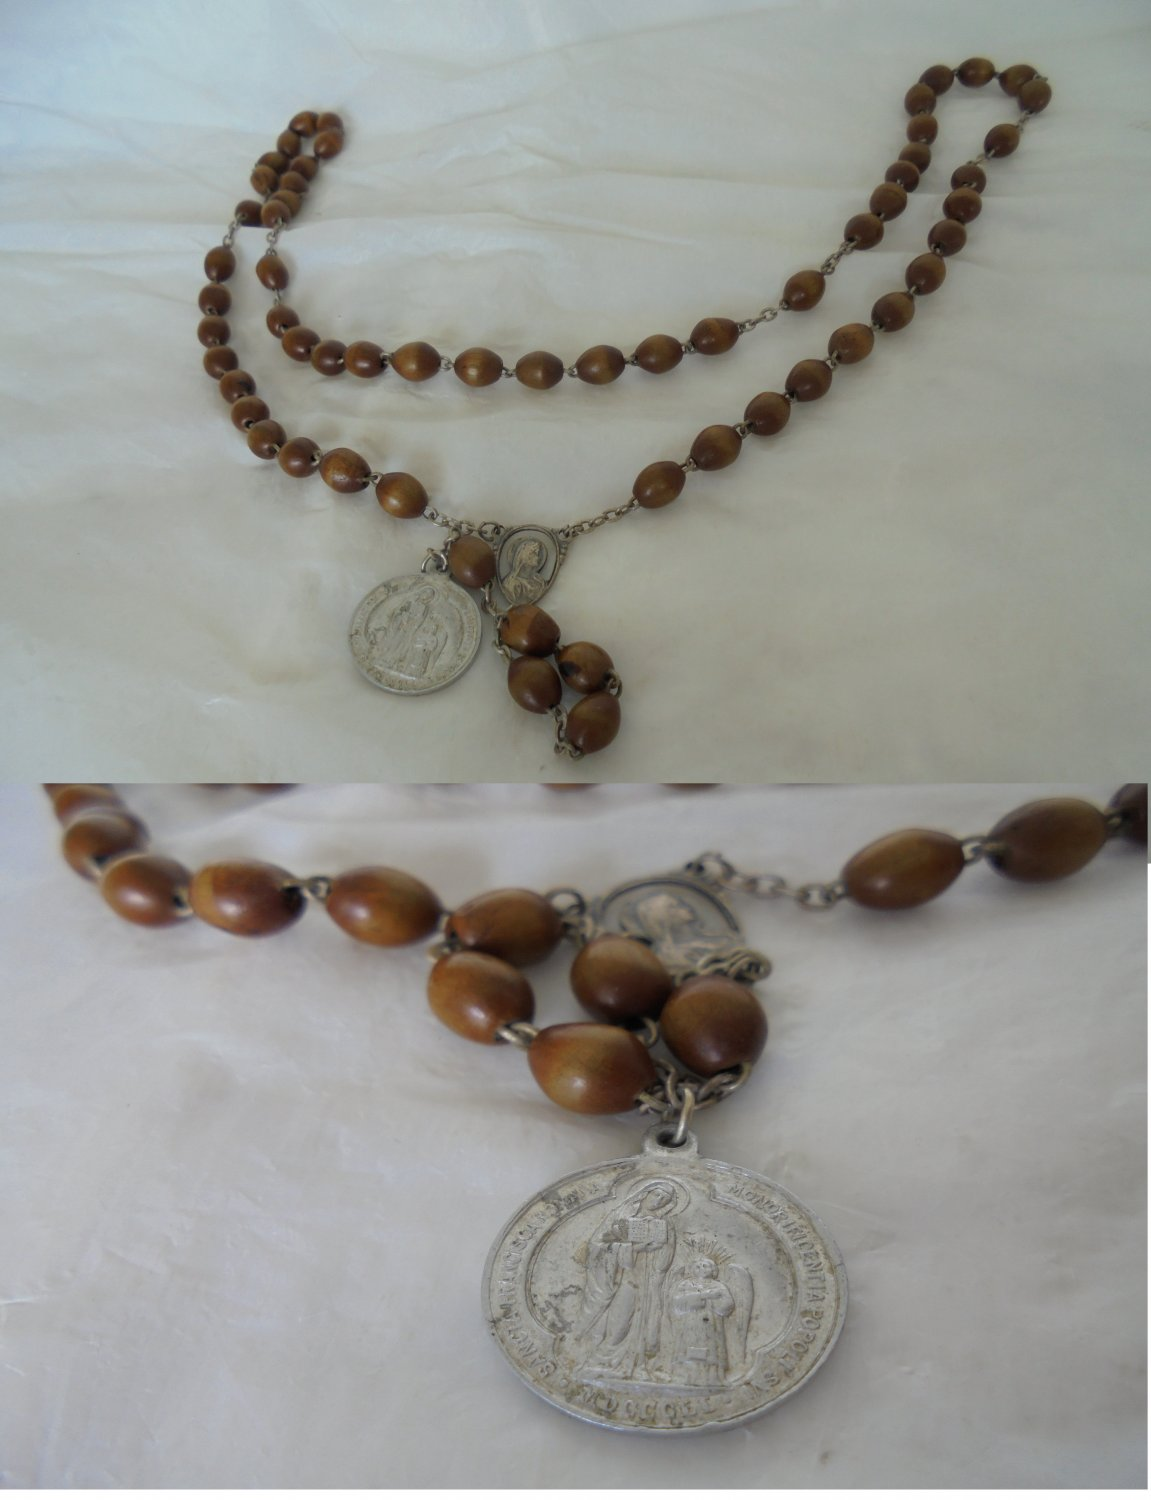 Convent praying Rosary Saint Frances of Rome Made in Italy 1950s